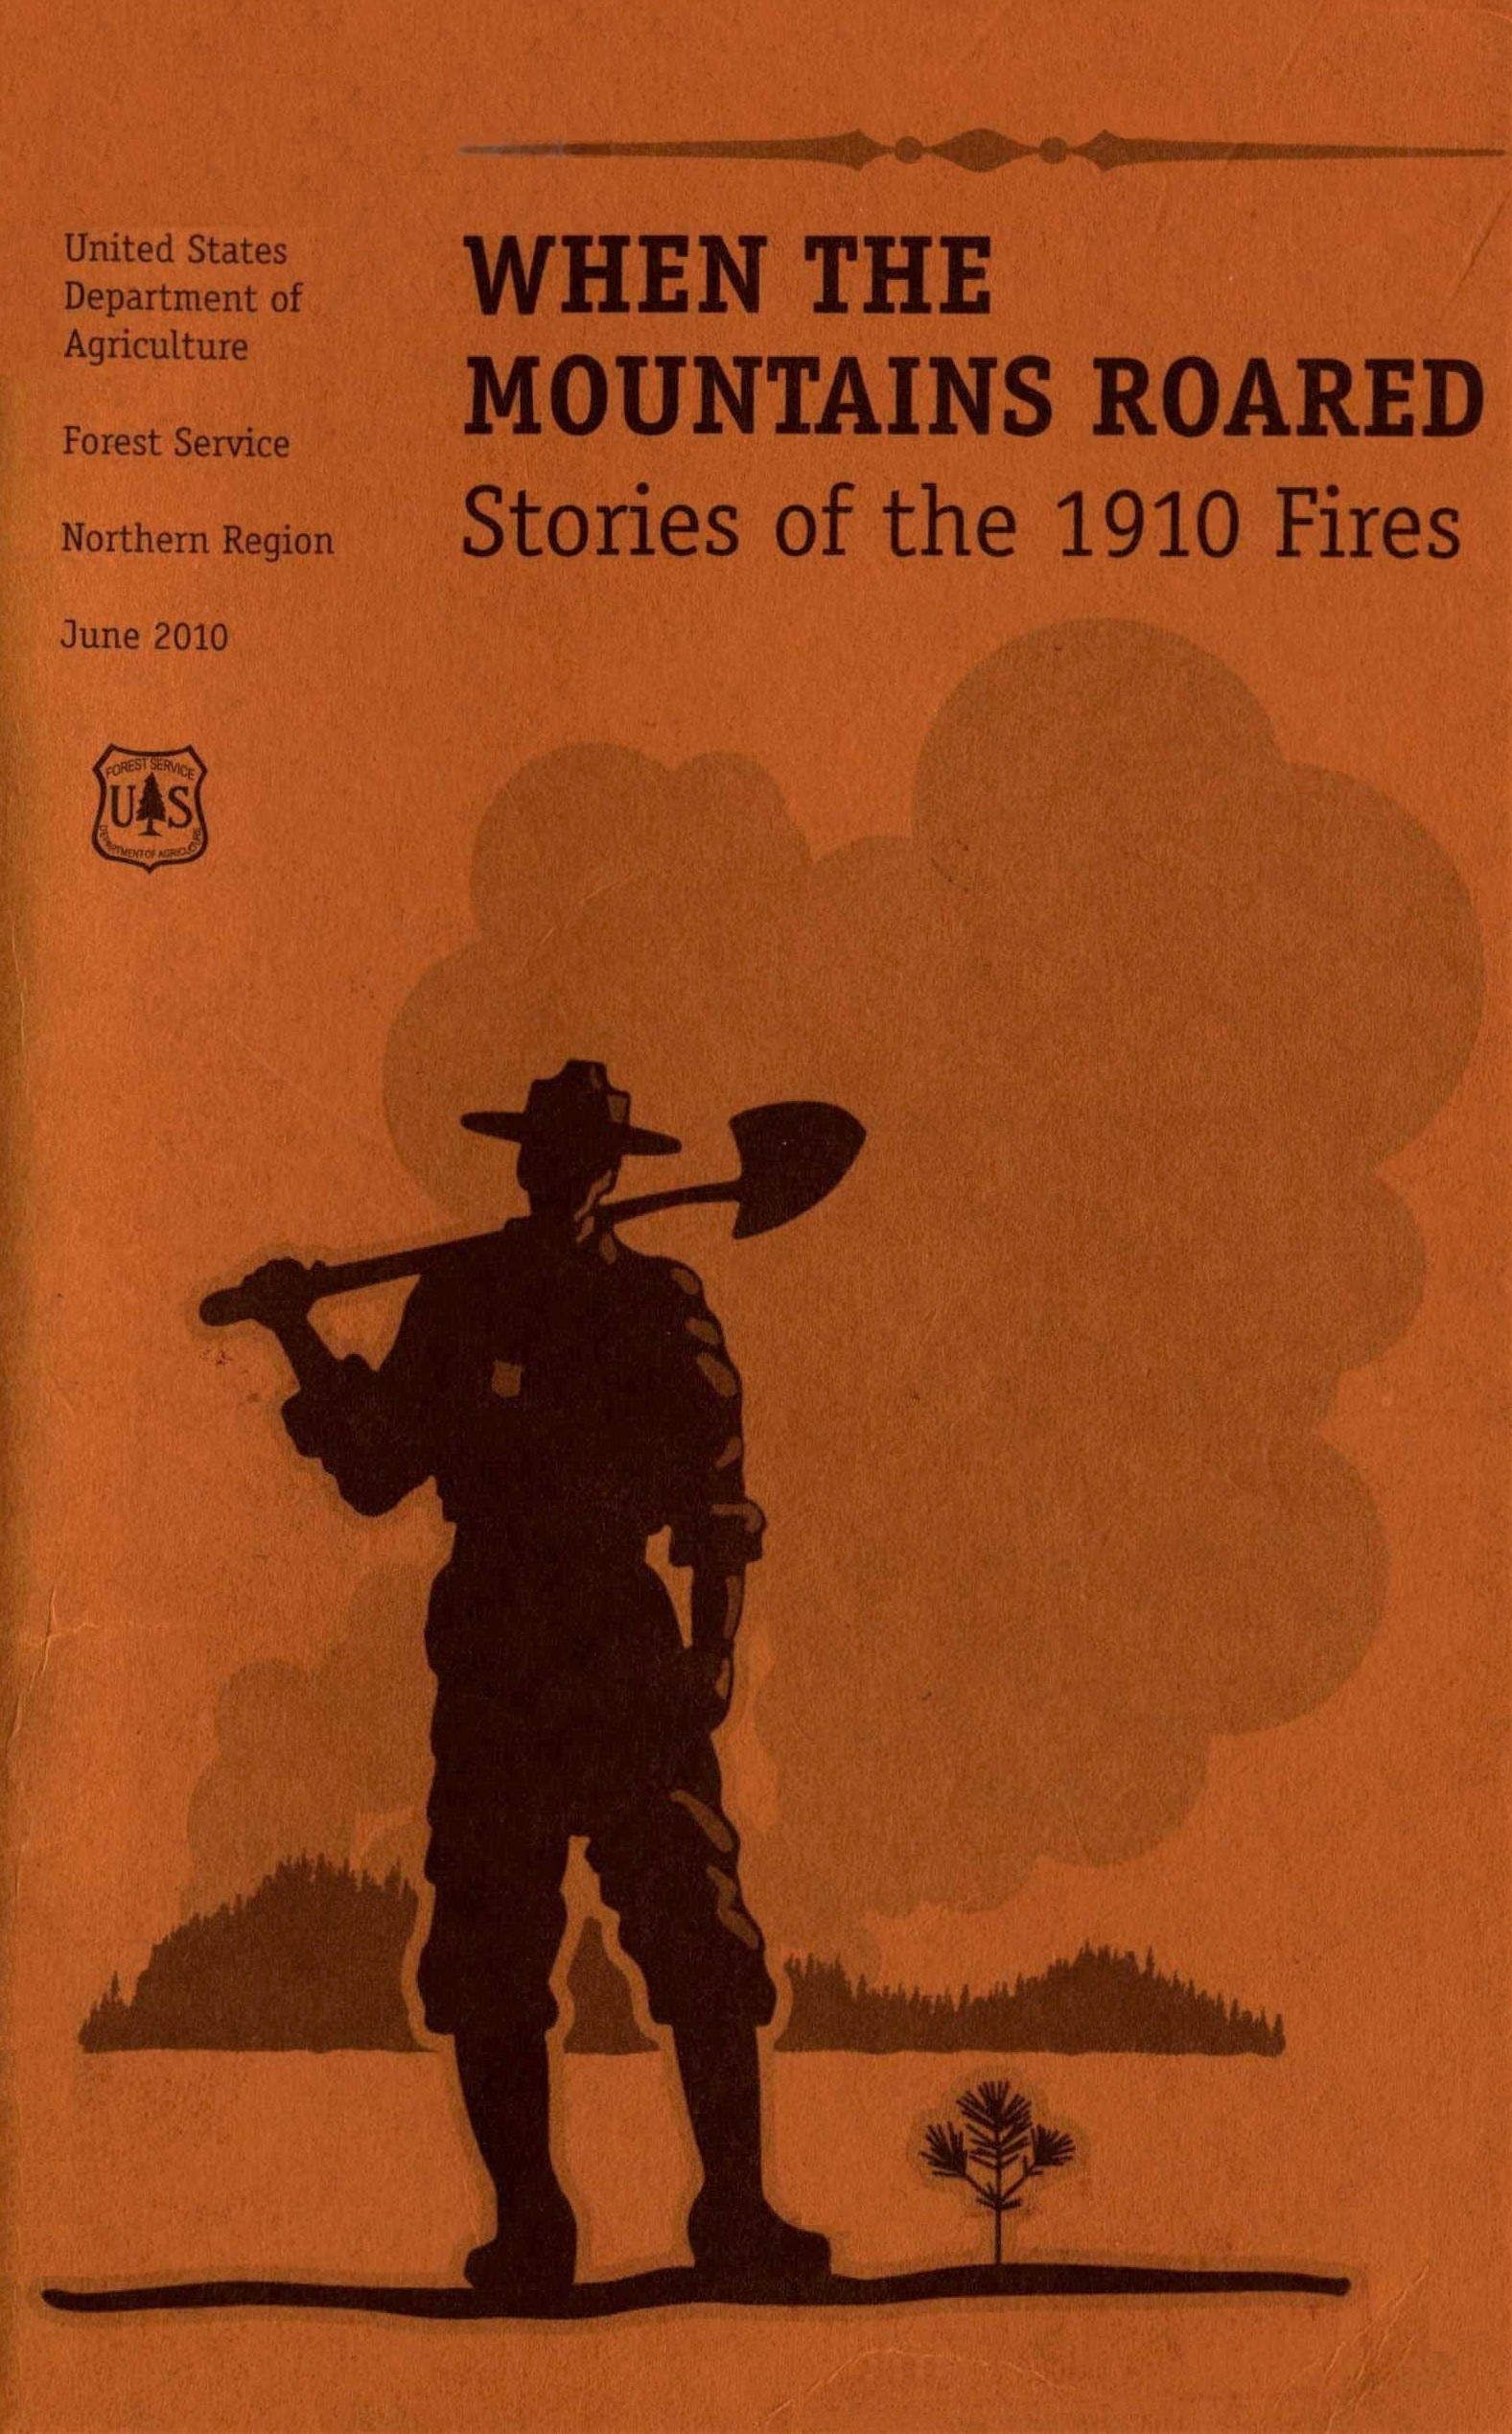 When the Mountains Roared: Stories of the 1910 Fires